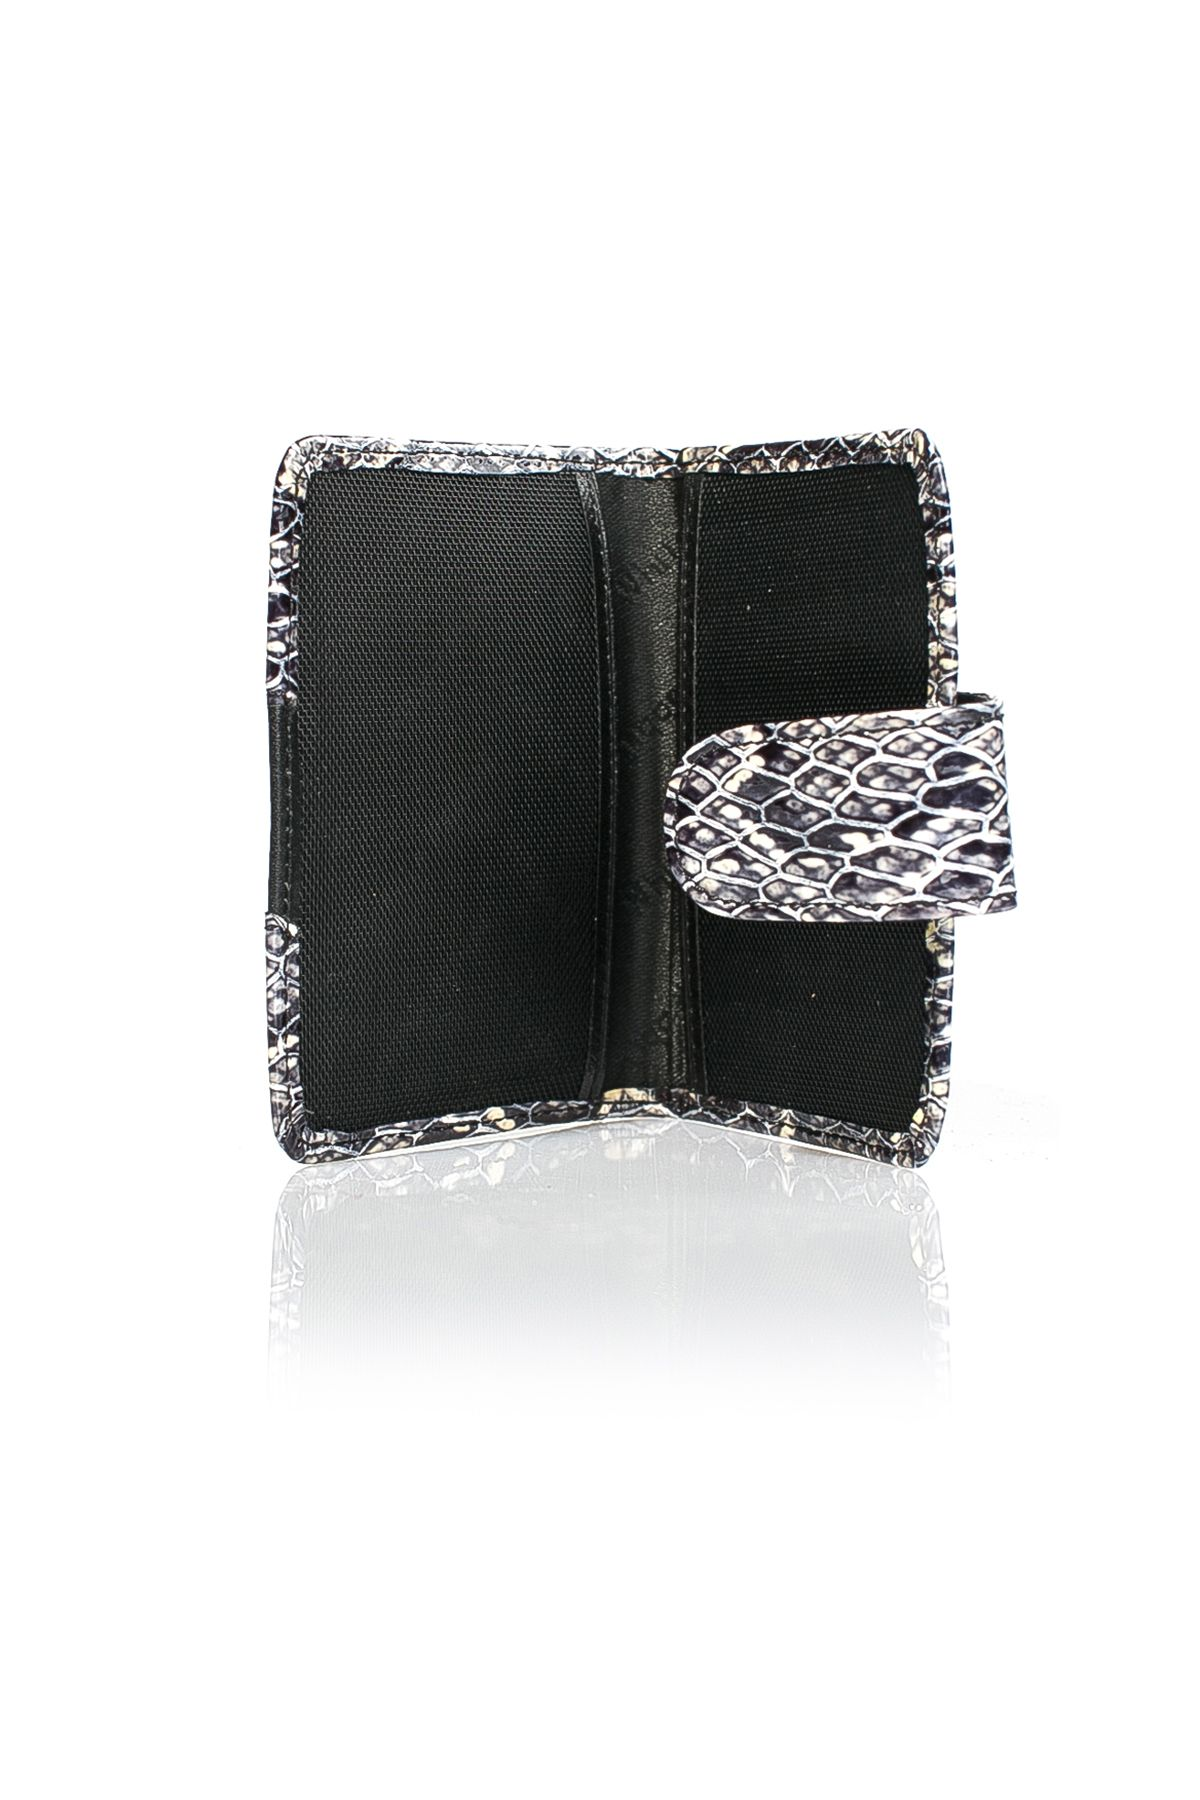 White Rabbit Pocket Wallet From Polished Leather With Anaconda Pattern Navy blue